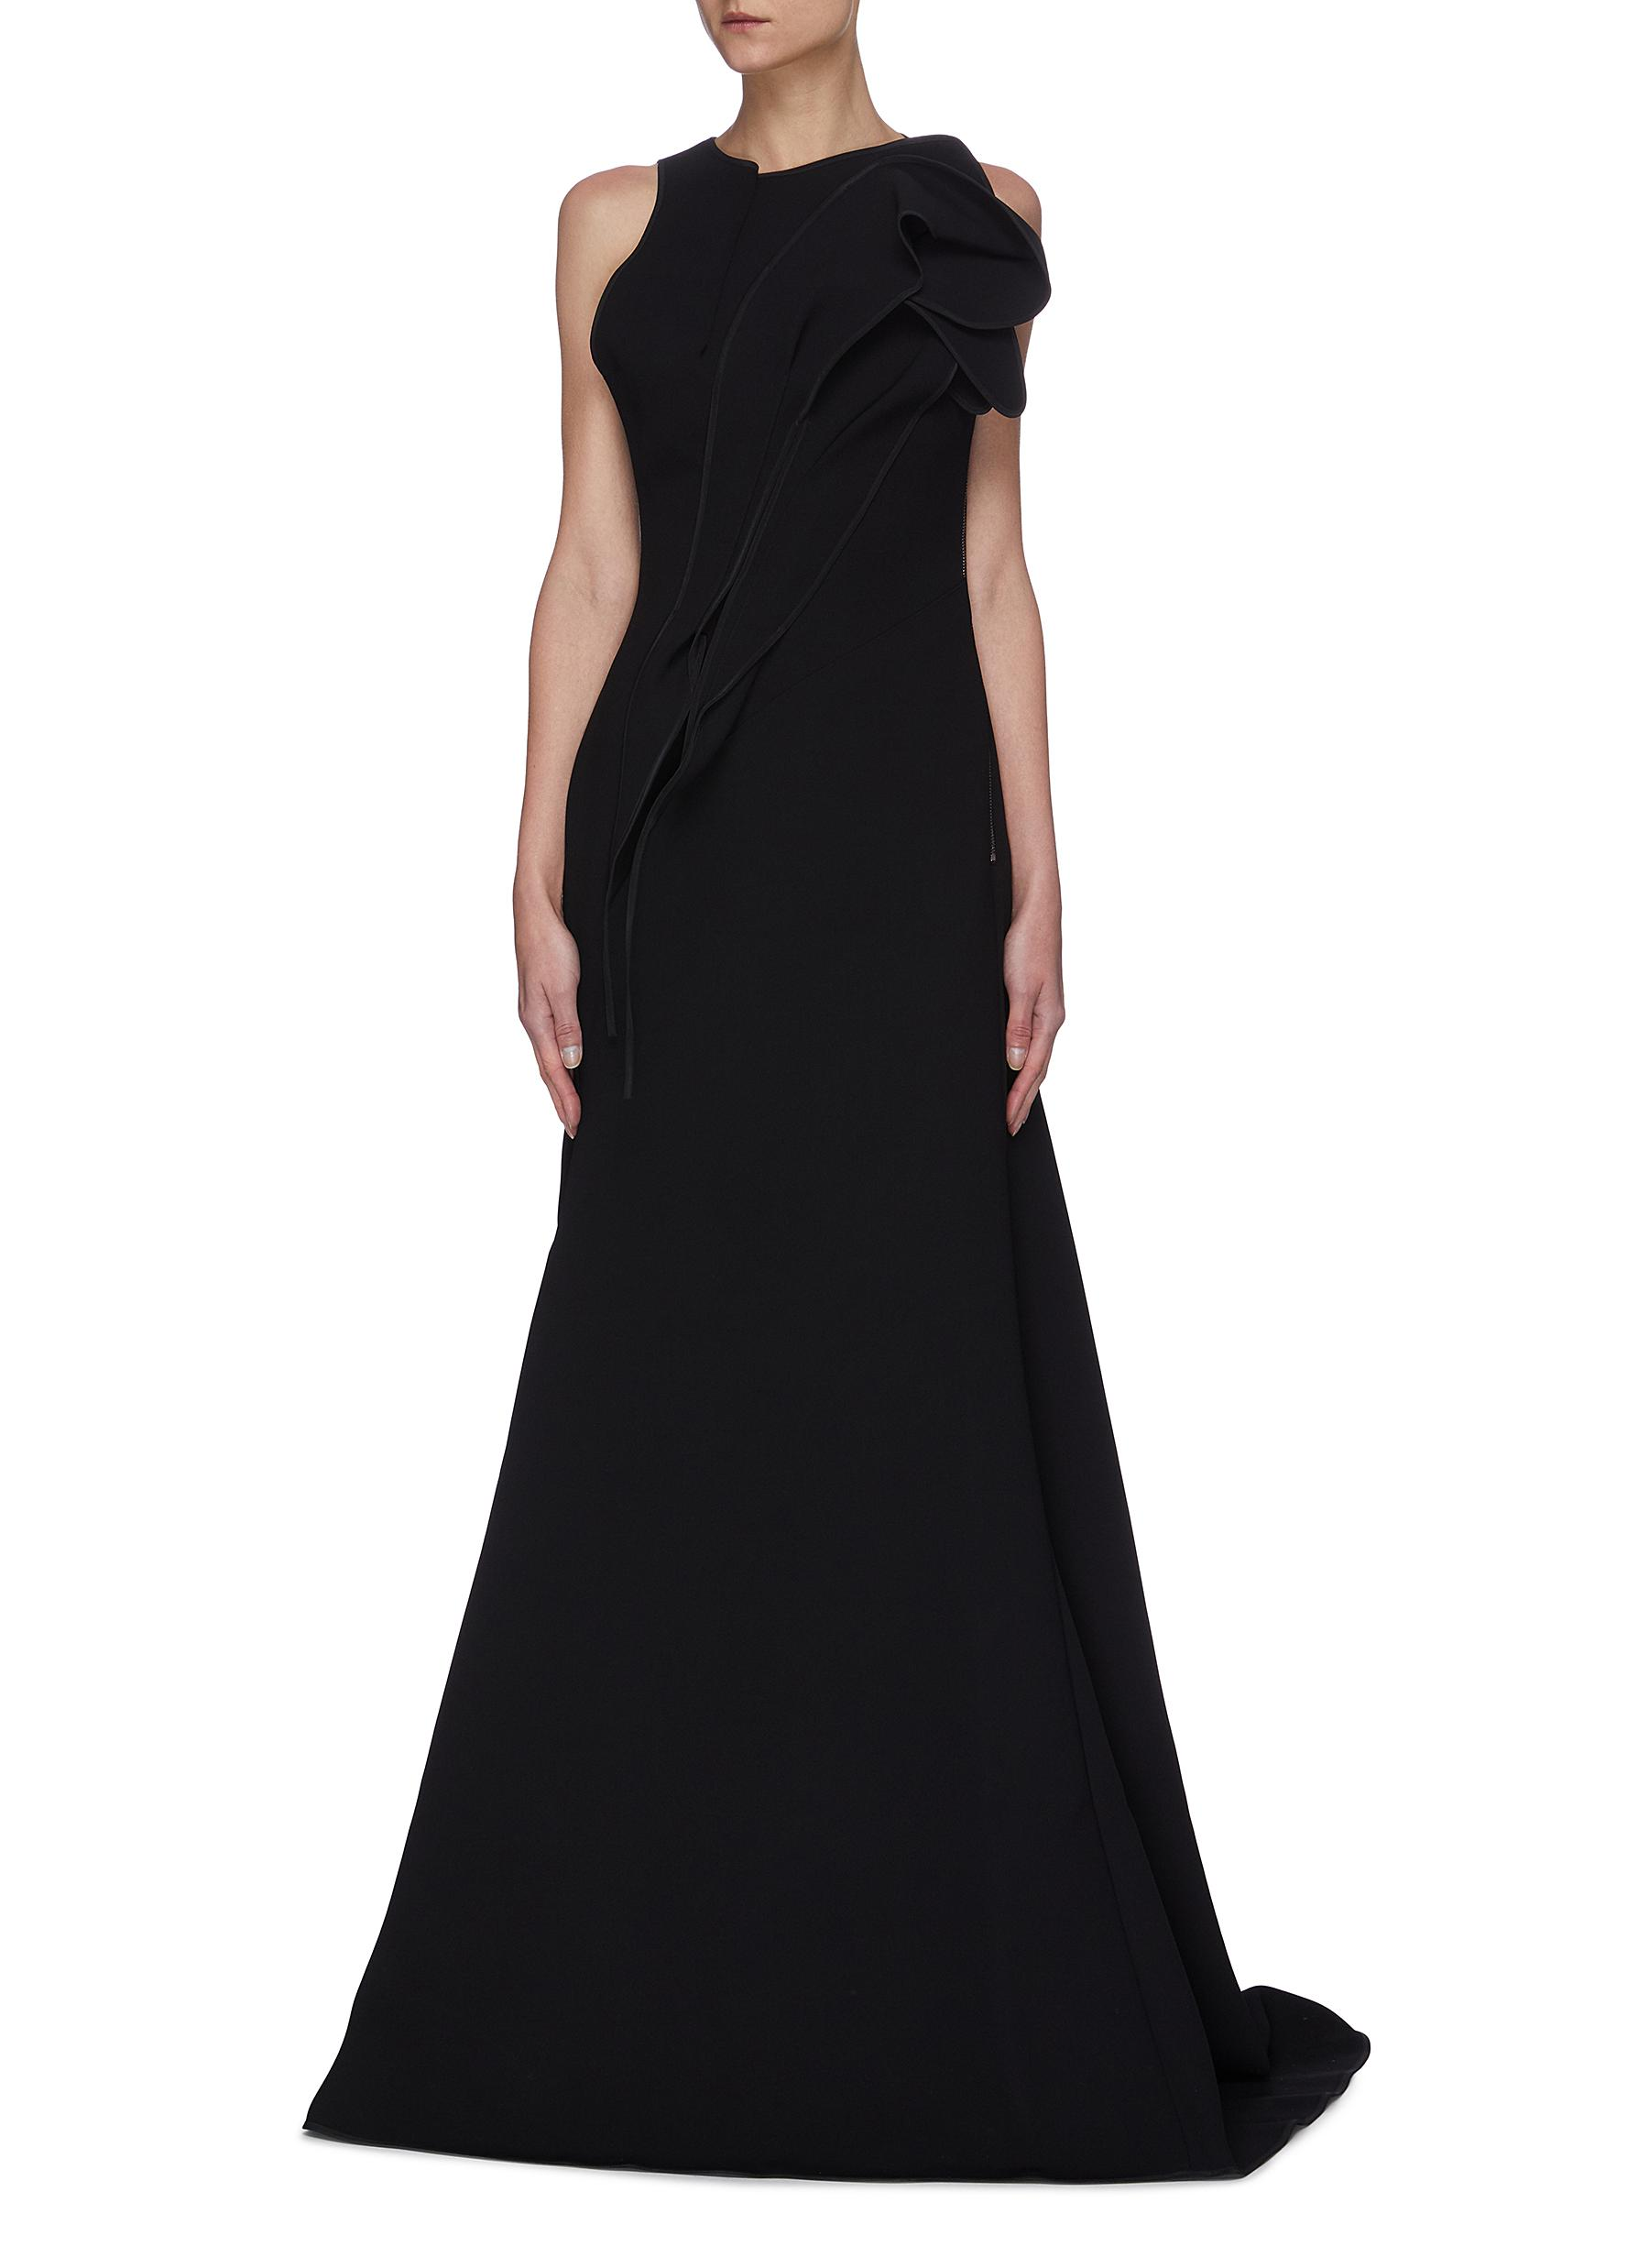 Buy Maticevski Dresses Avow' sleeveless gown